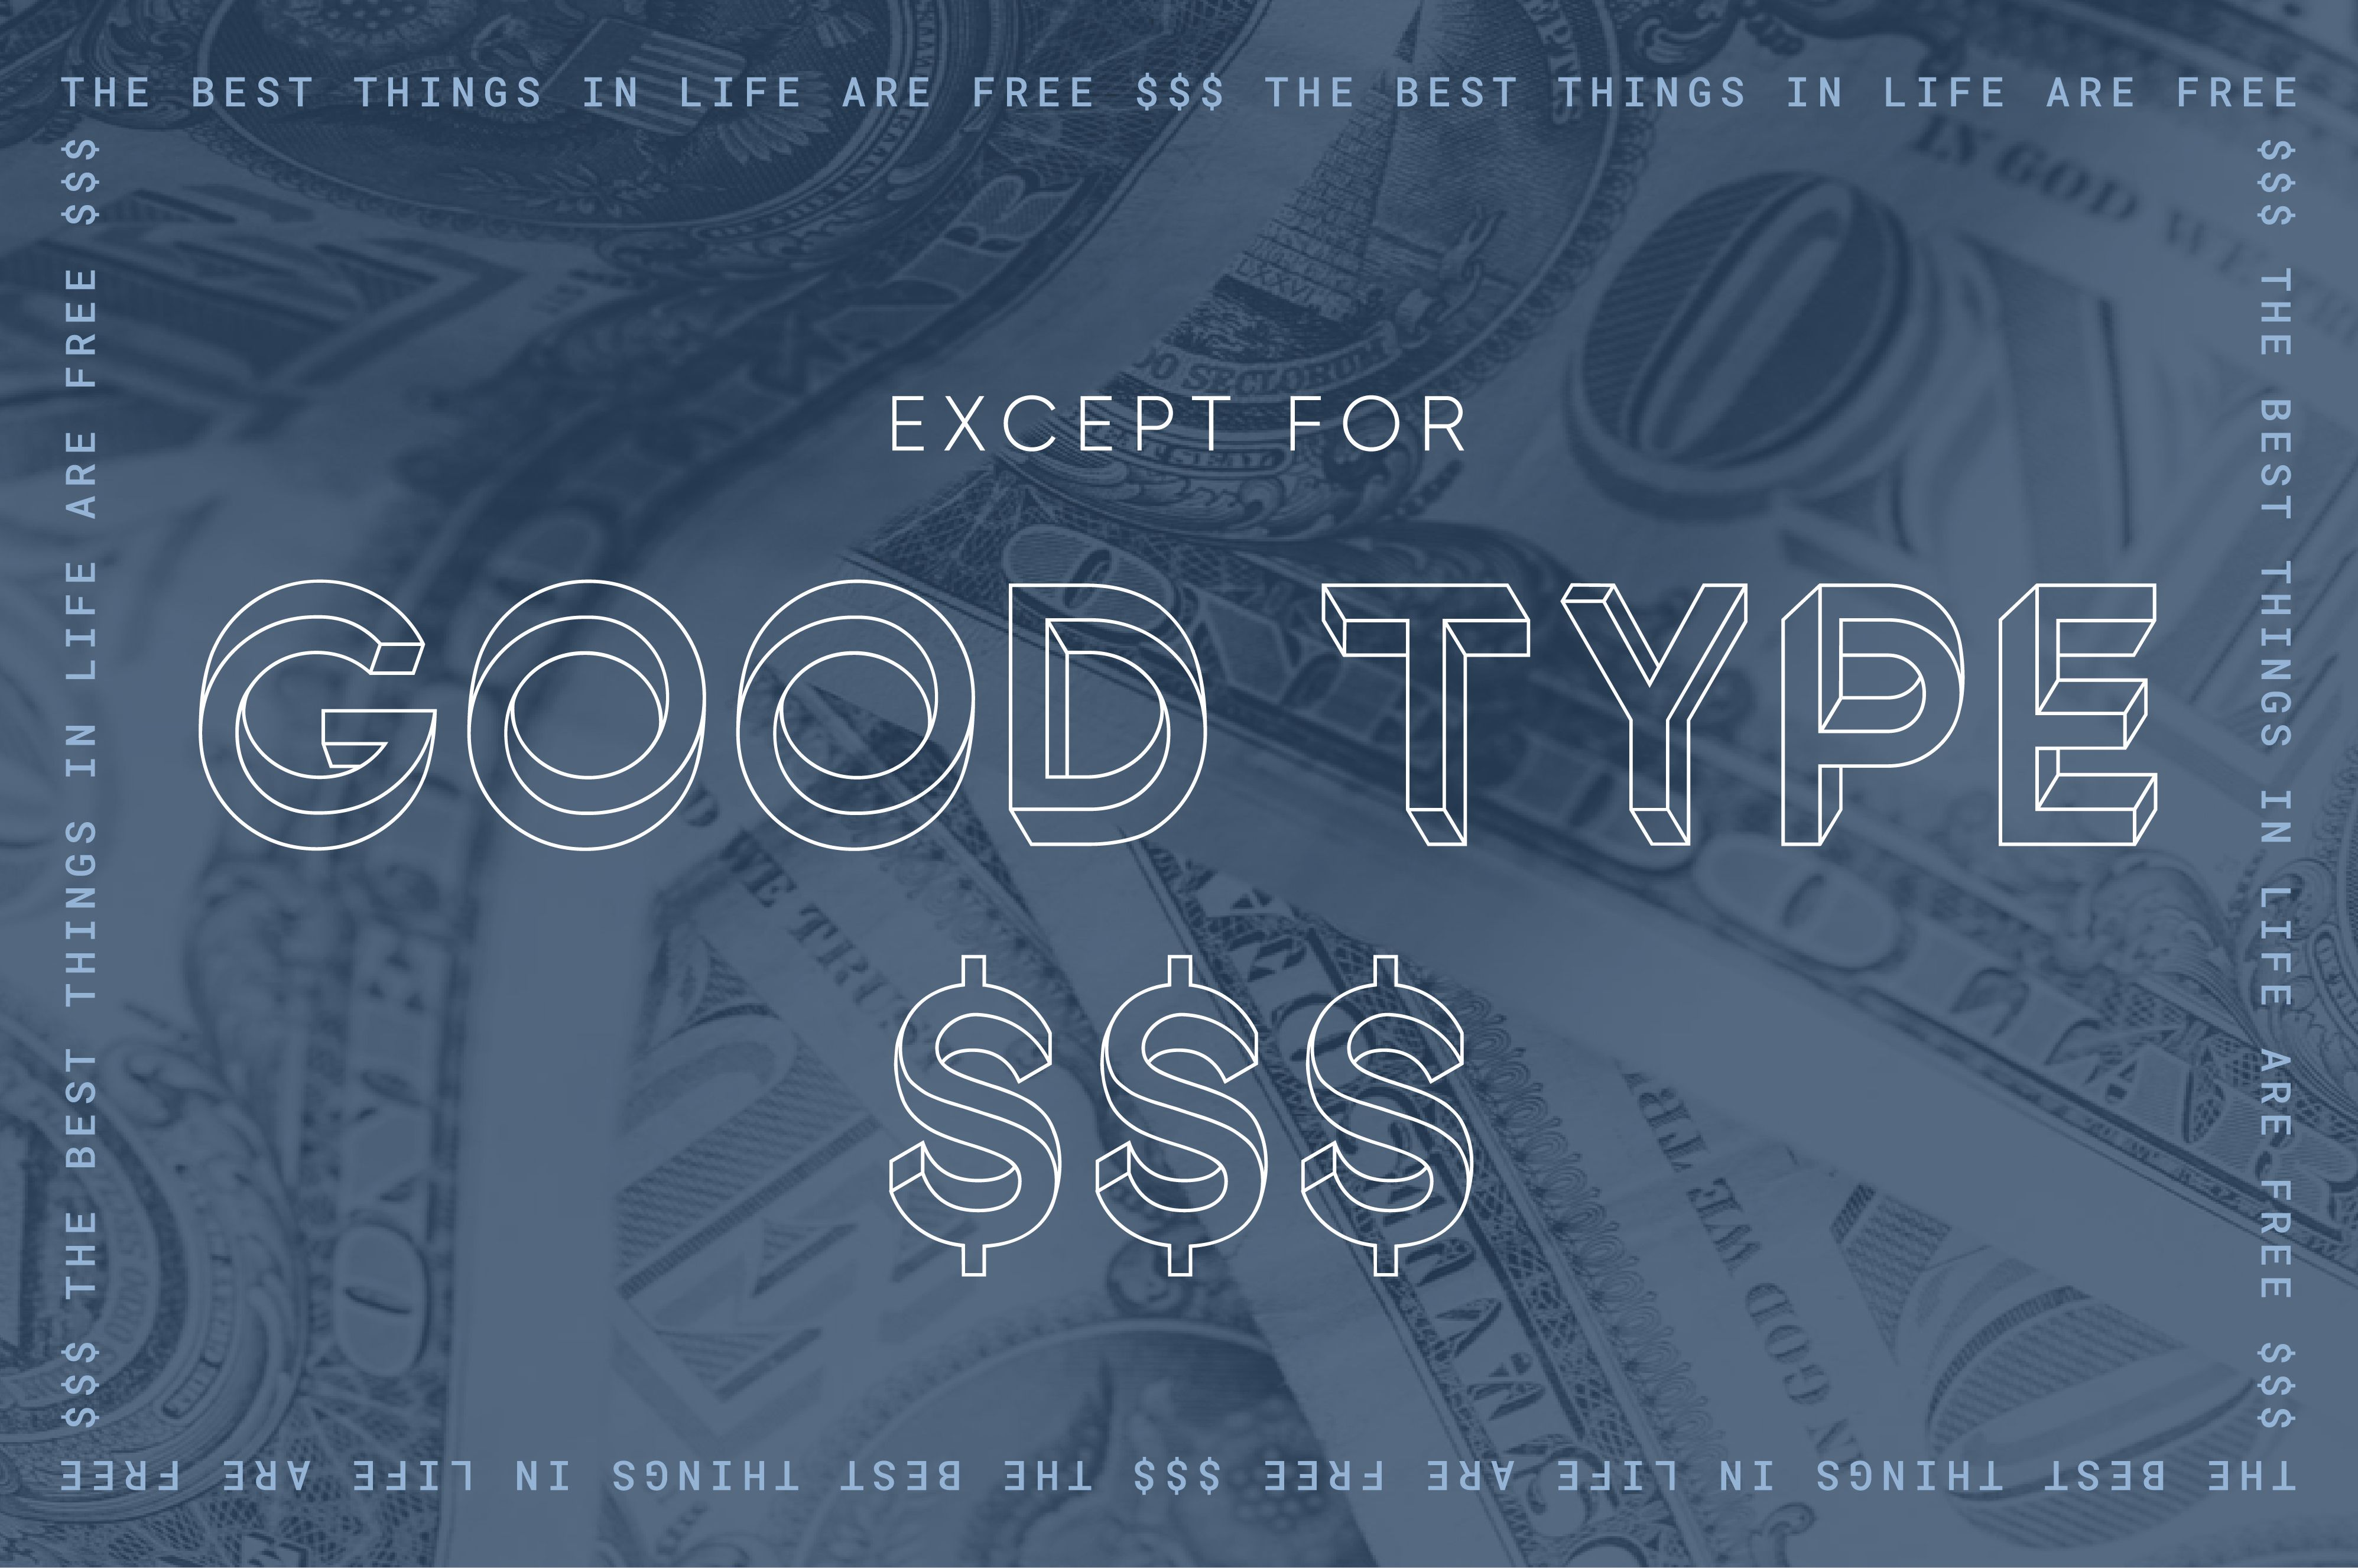 The best things in life are free… Except for good type.